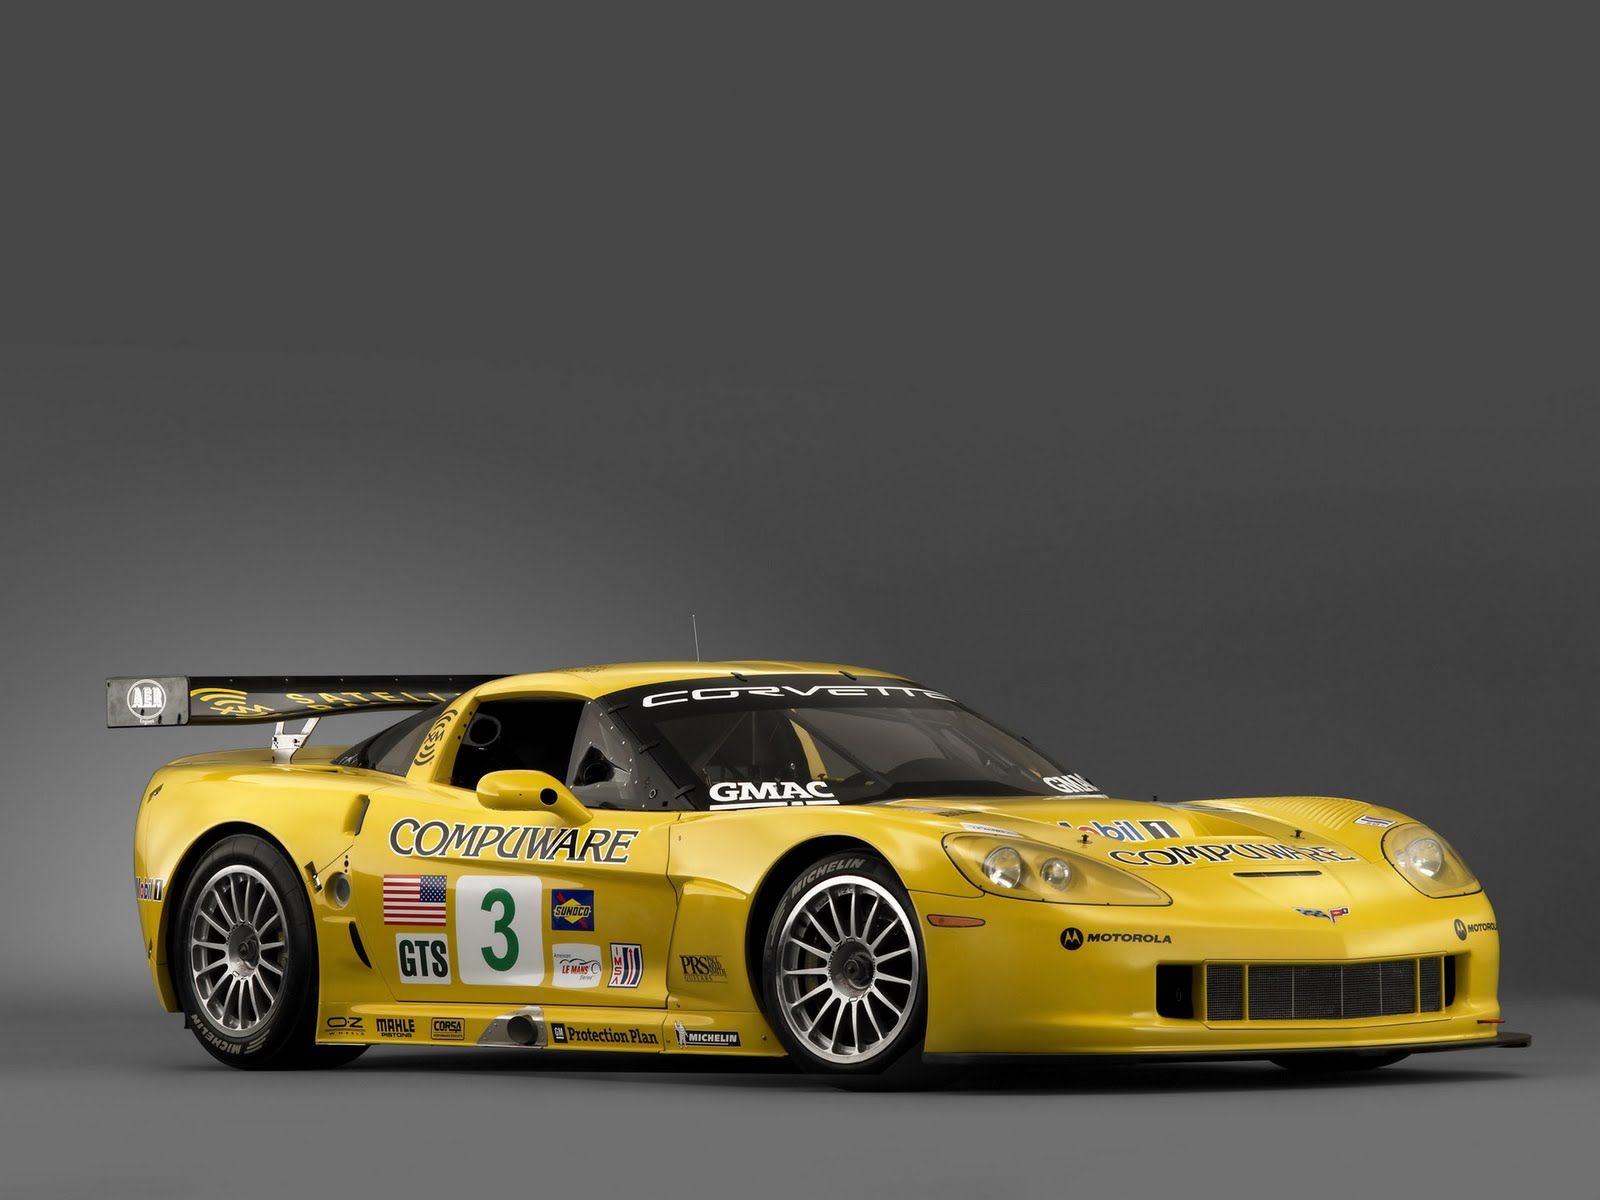 Cars Wallpapers: Fine Collection Of HD Cars Wallpapers